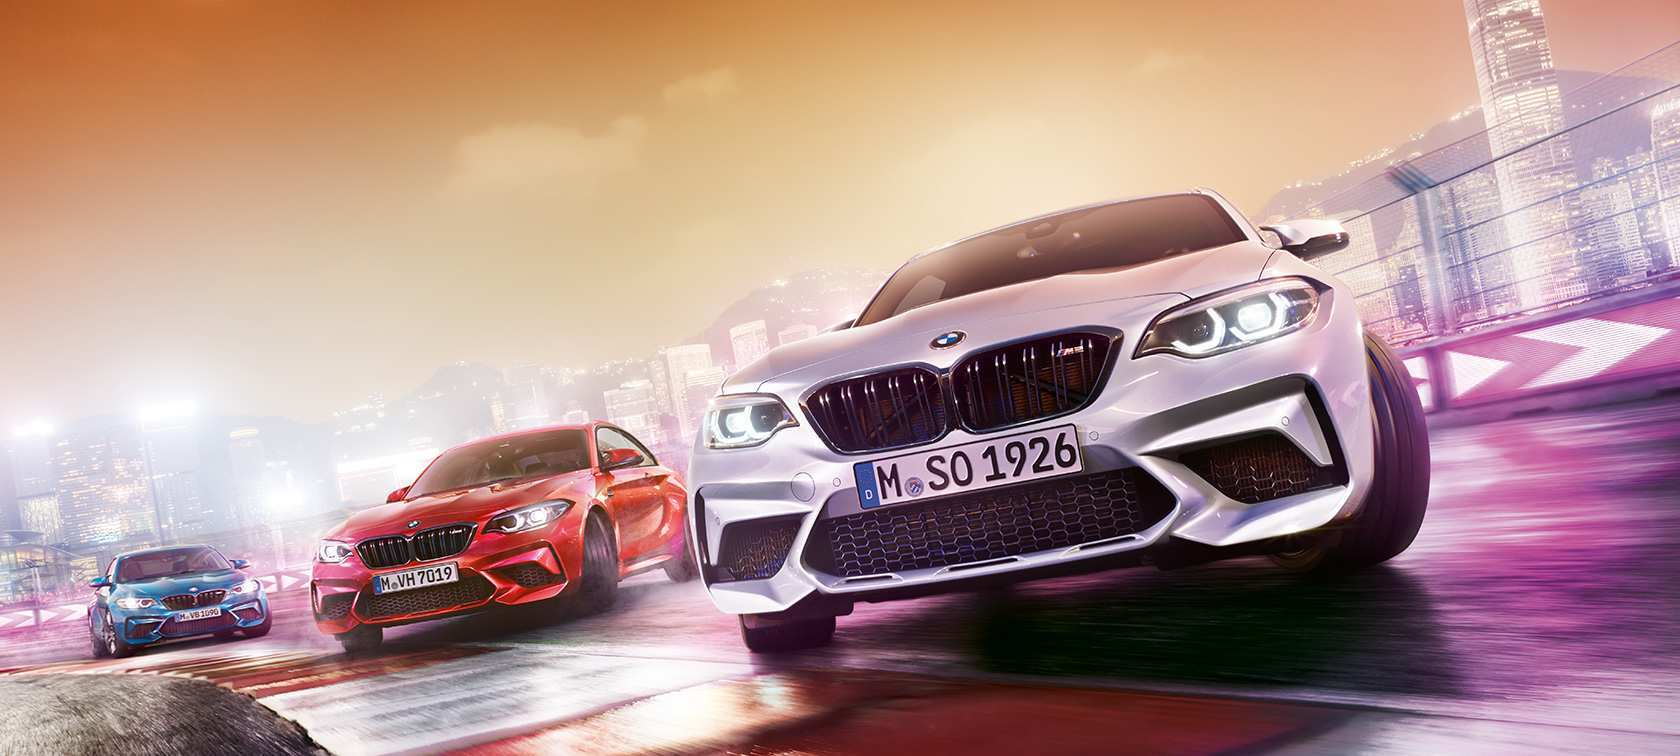 56 Great Bmw Ca Training Programme 2019 Specs And Review Reviews for Bmw Ca Training Programme 2019 Specs And Review